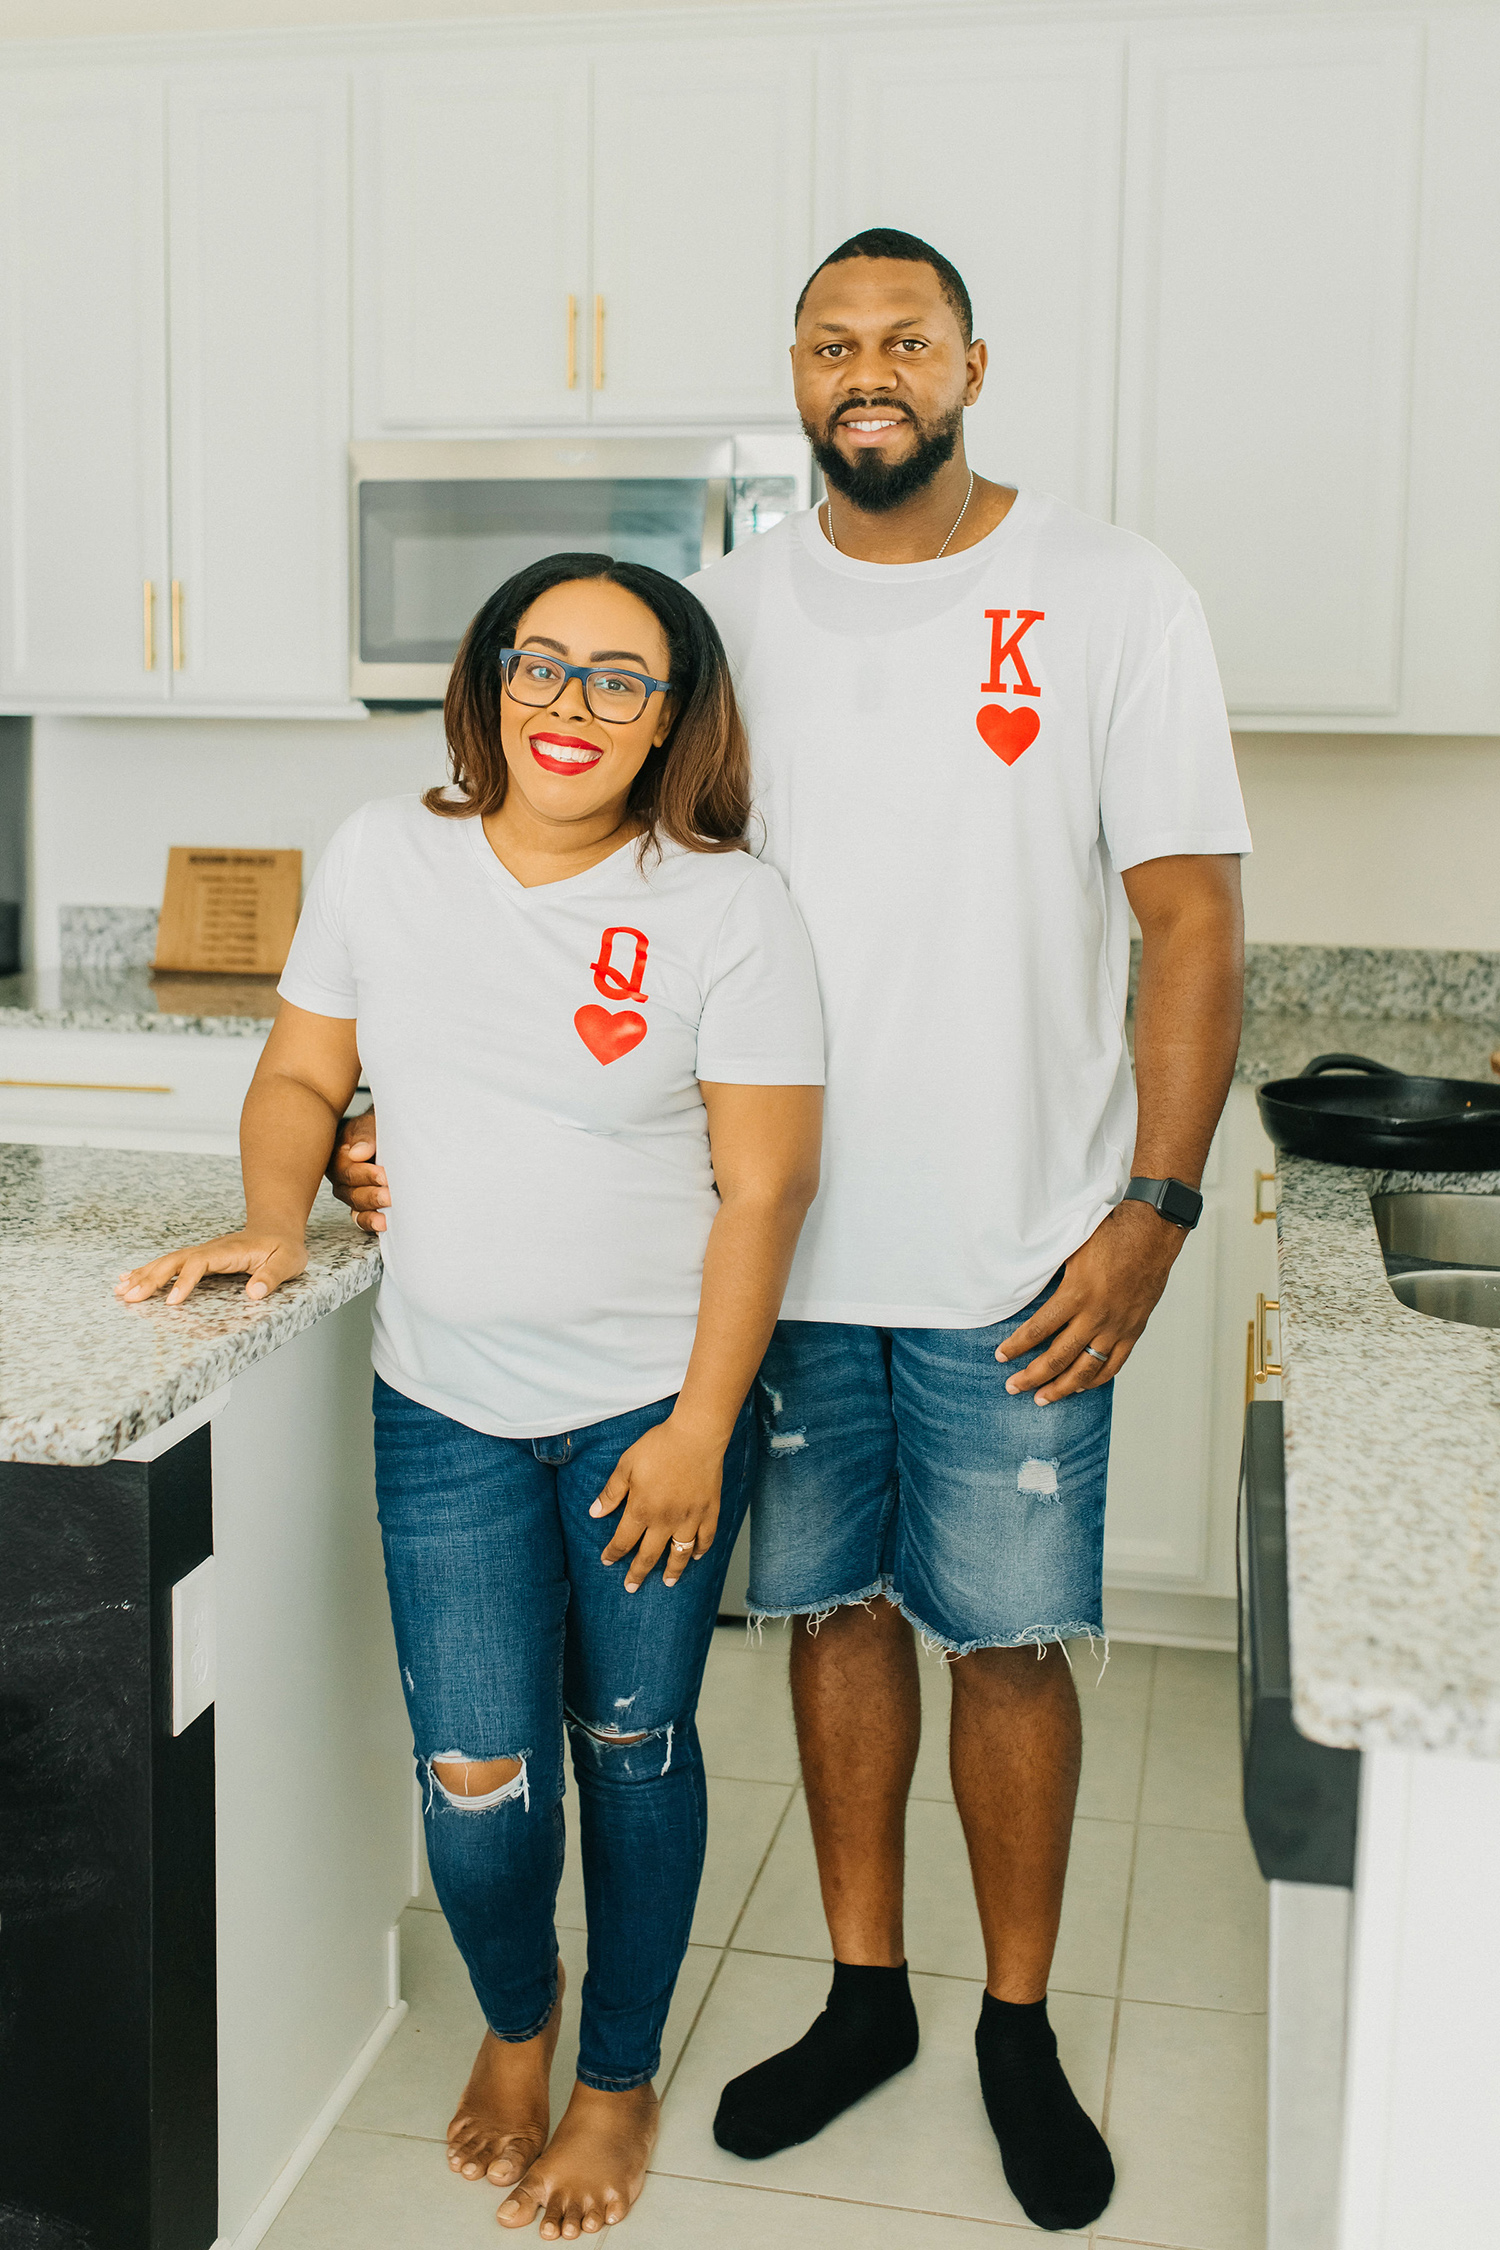 diy king and queen shirts